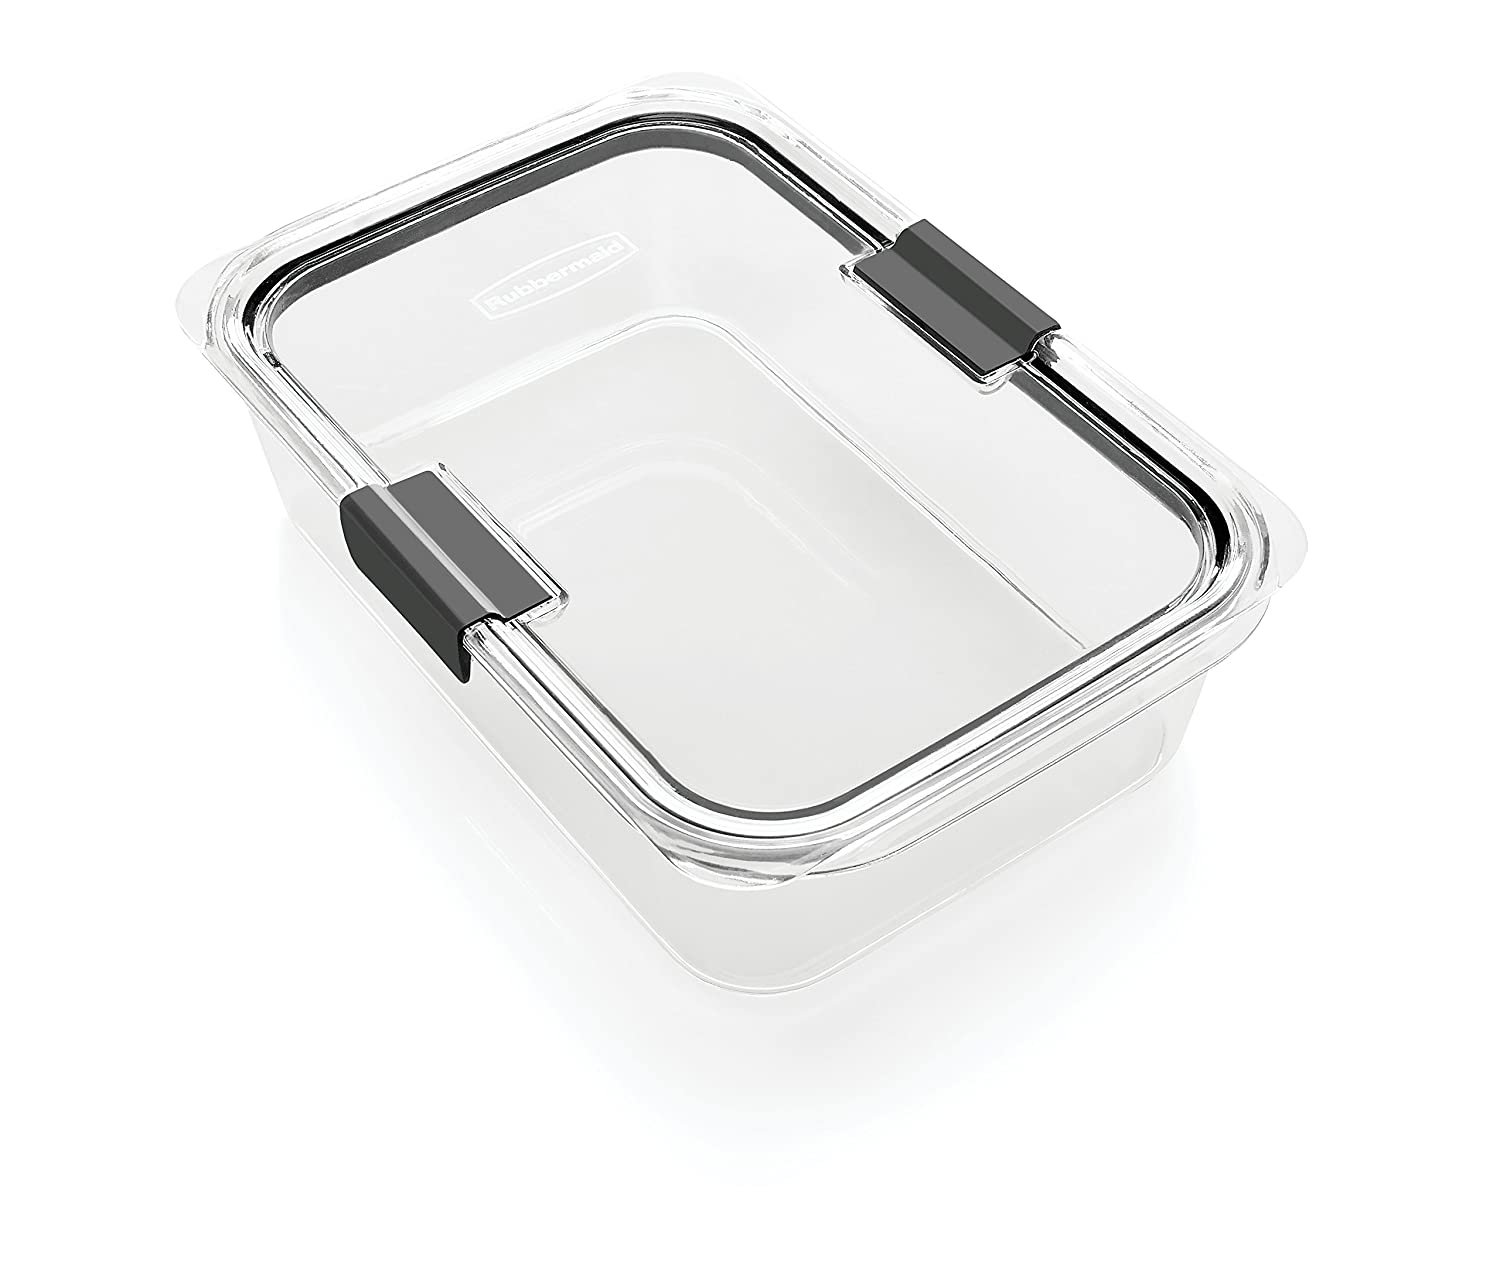 Rubbermaid Brilliance Food Storage Container, Large, 9.6 Cup, 100 Percents Leak Proof, Plastic, Clear by Rubbermaid